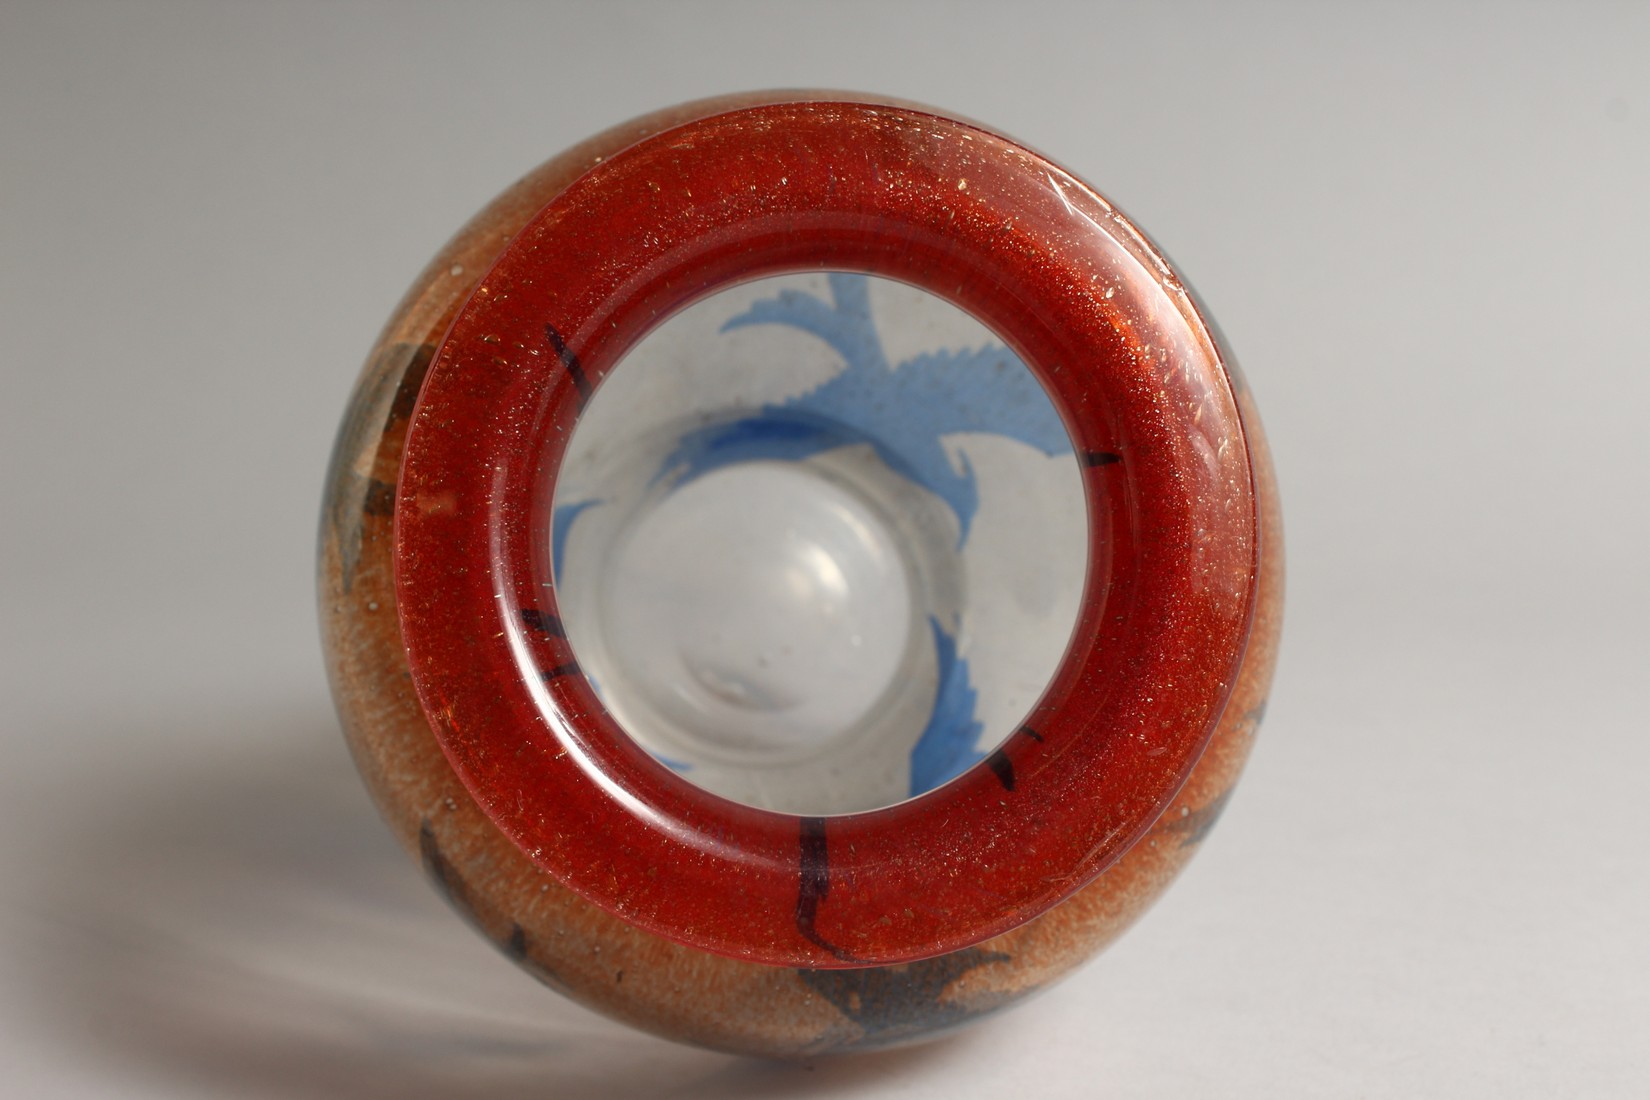 A DANISH ART GLASS VASE, CIRCA 1920, the orange and clear glass body decorated with birds 9.5ins - Image 5 of 6